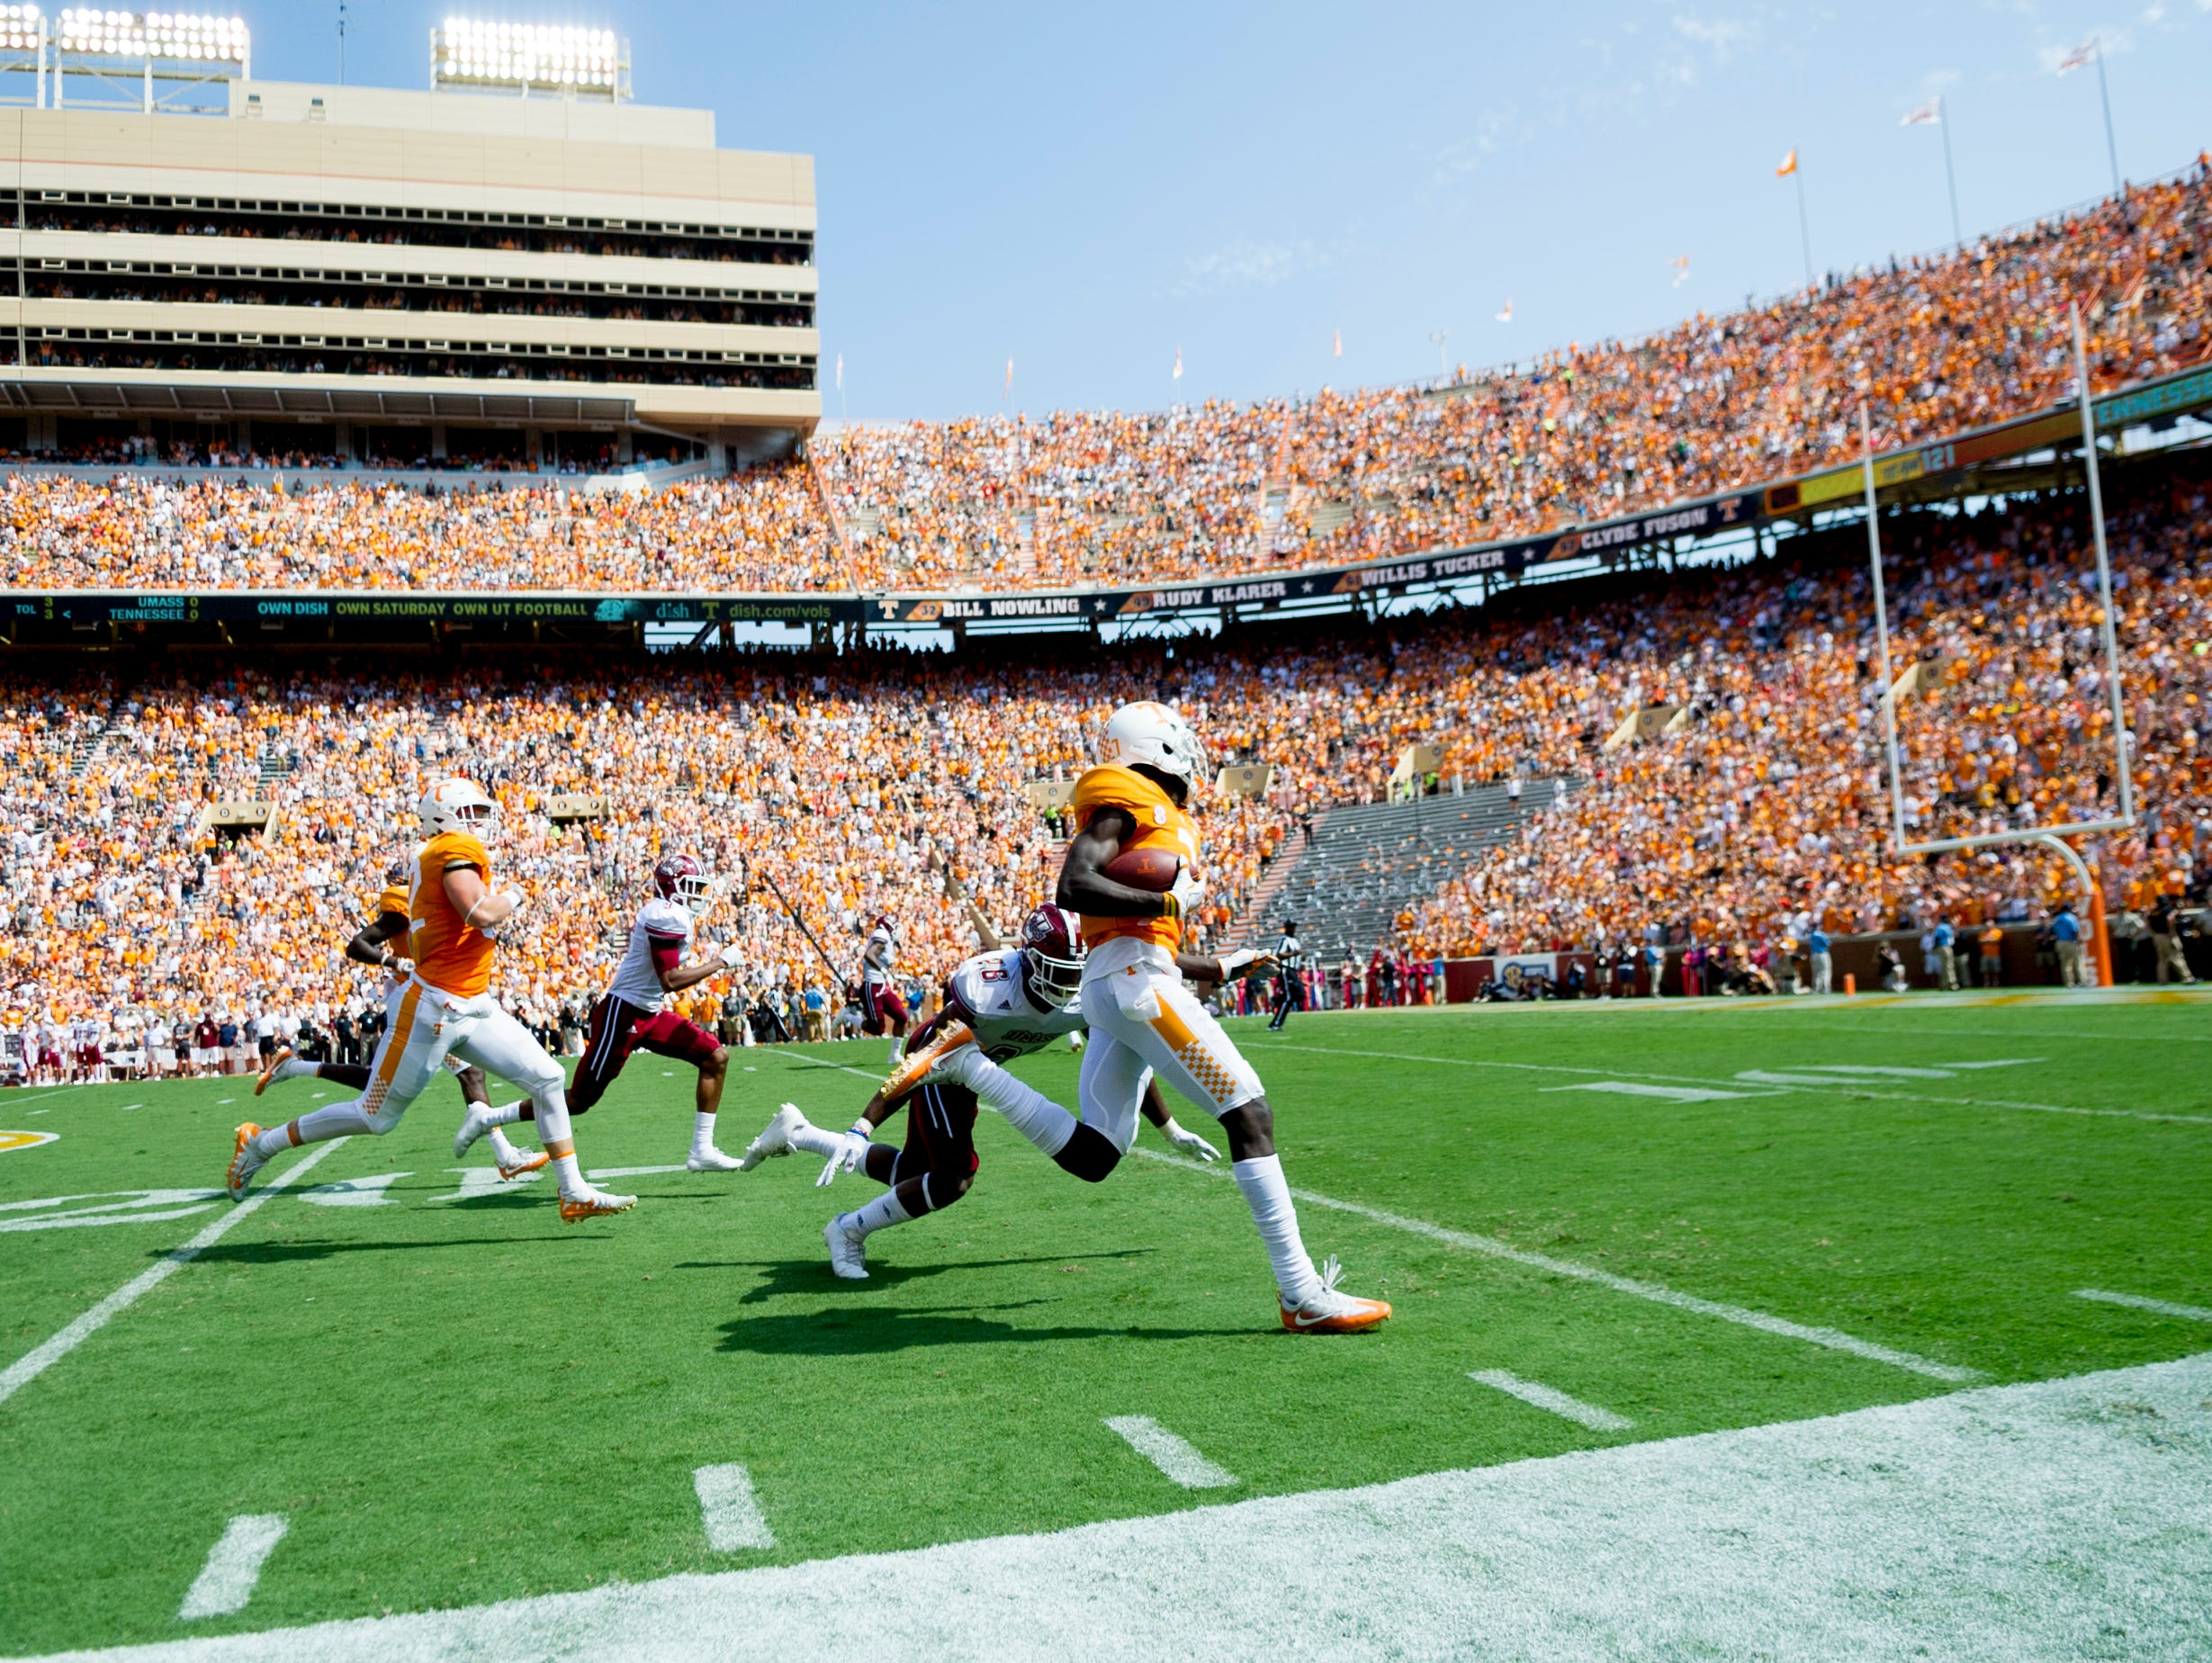 Tennessee wide receiver Brandon Johnson (7) runs the ball during the Tennessee Volunteers vs. UMass Minutemen game at Neyland Stadium in Knoxville, Tennessee on Saturday, September 23, 2017.